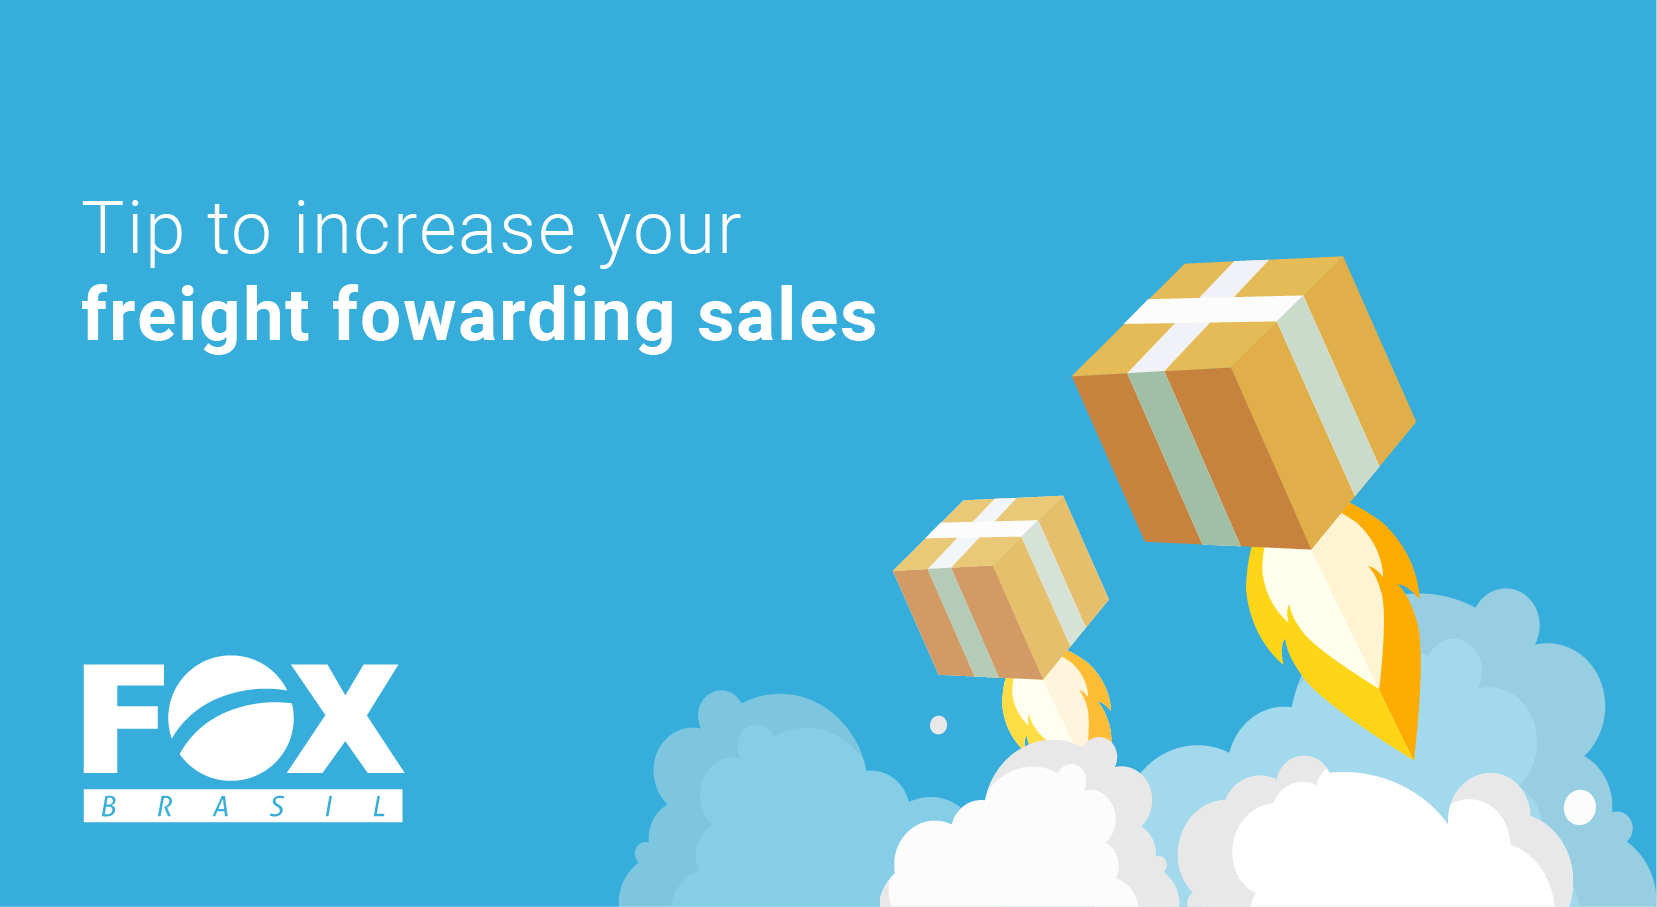 Increase freight forwarding sales through 5 simple steps